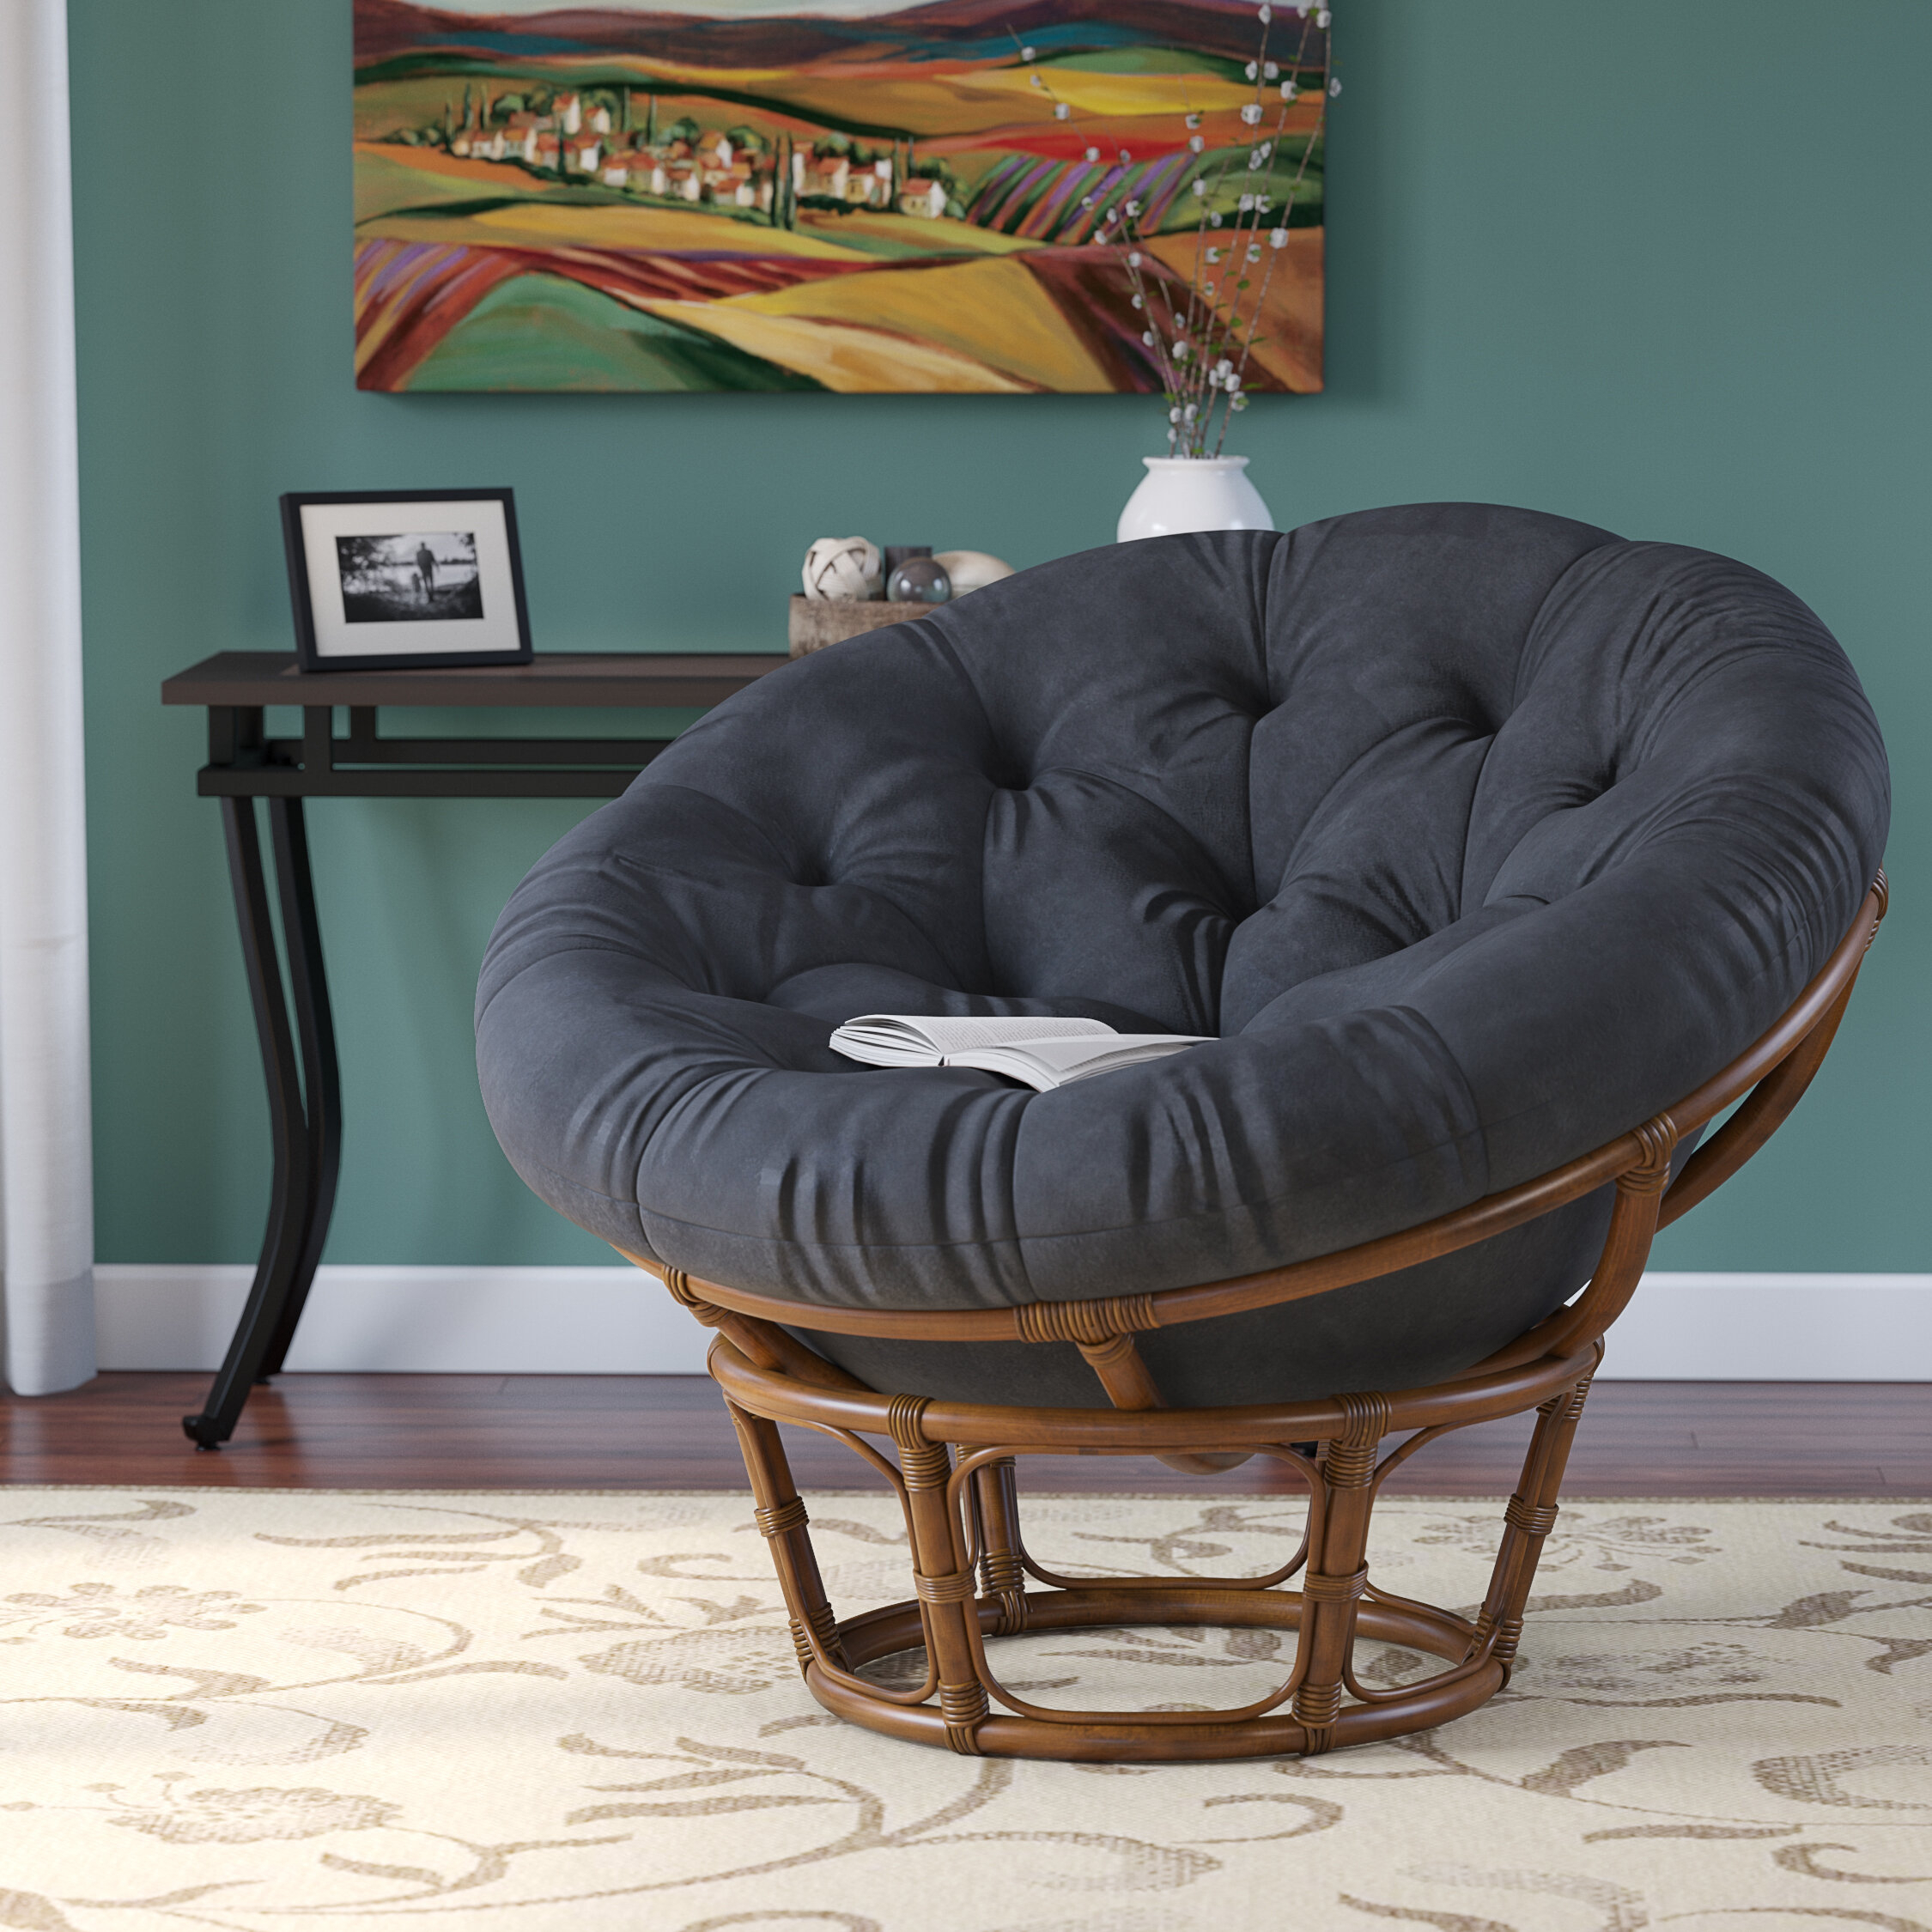 Papasan Solid Accent Chairs You'Ll Love In 2021 | Wayfair With Regard To Campton Papasan Chairs (View 2 of 15)